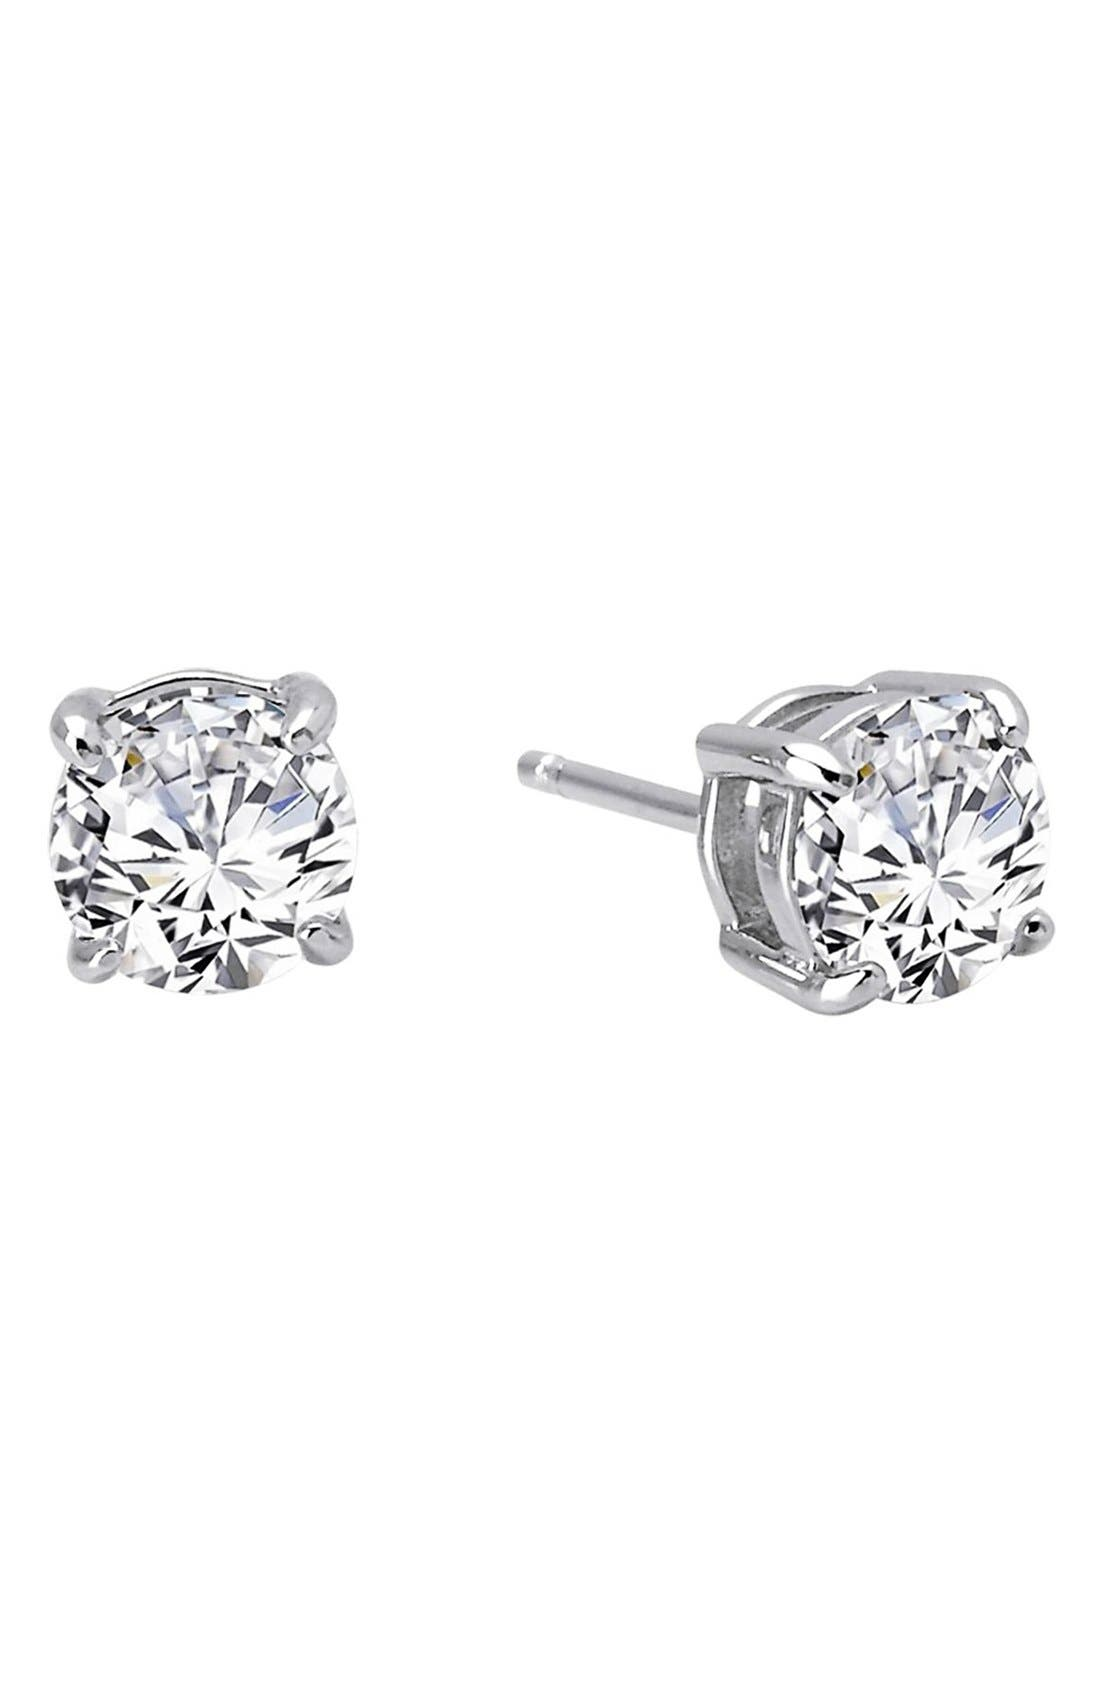 Lafonn 'Lassaire' Four Prong Stud Earrings